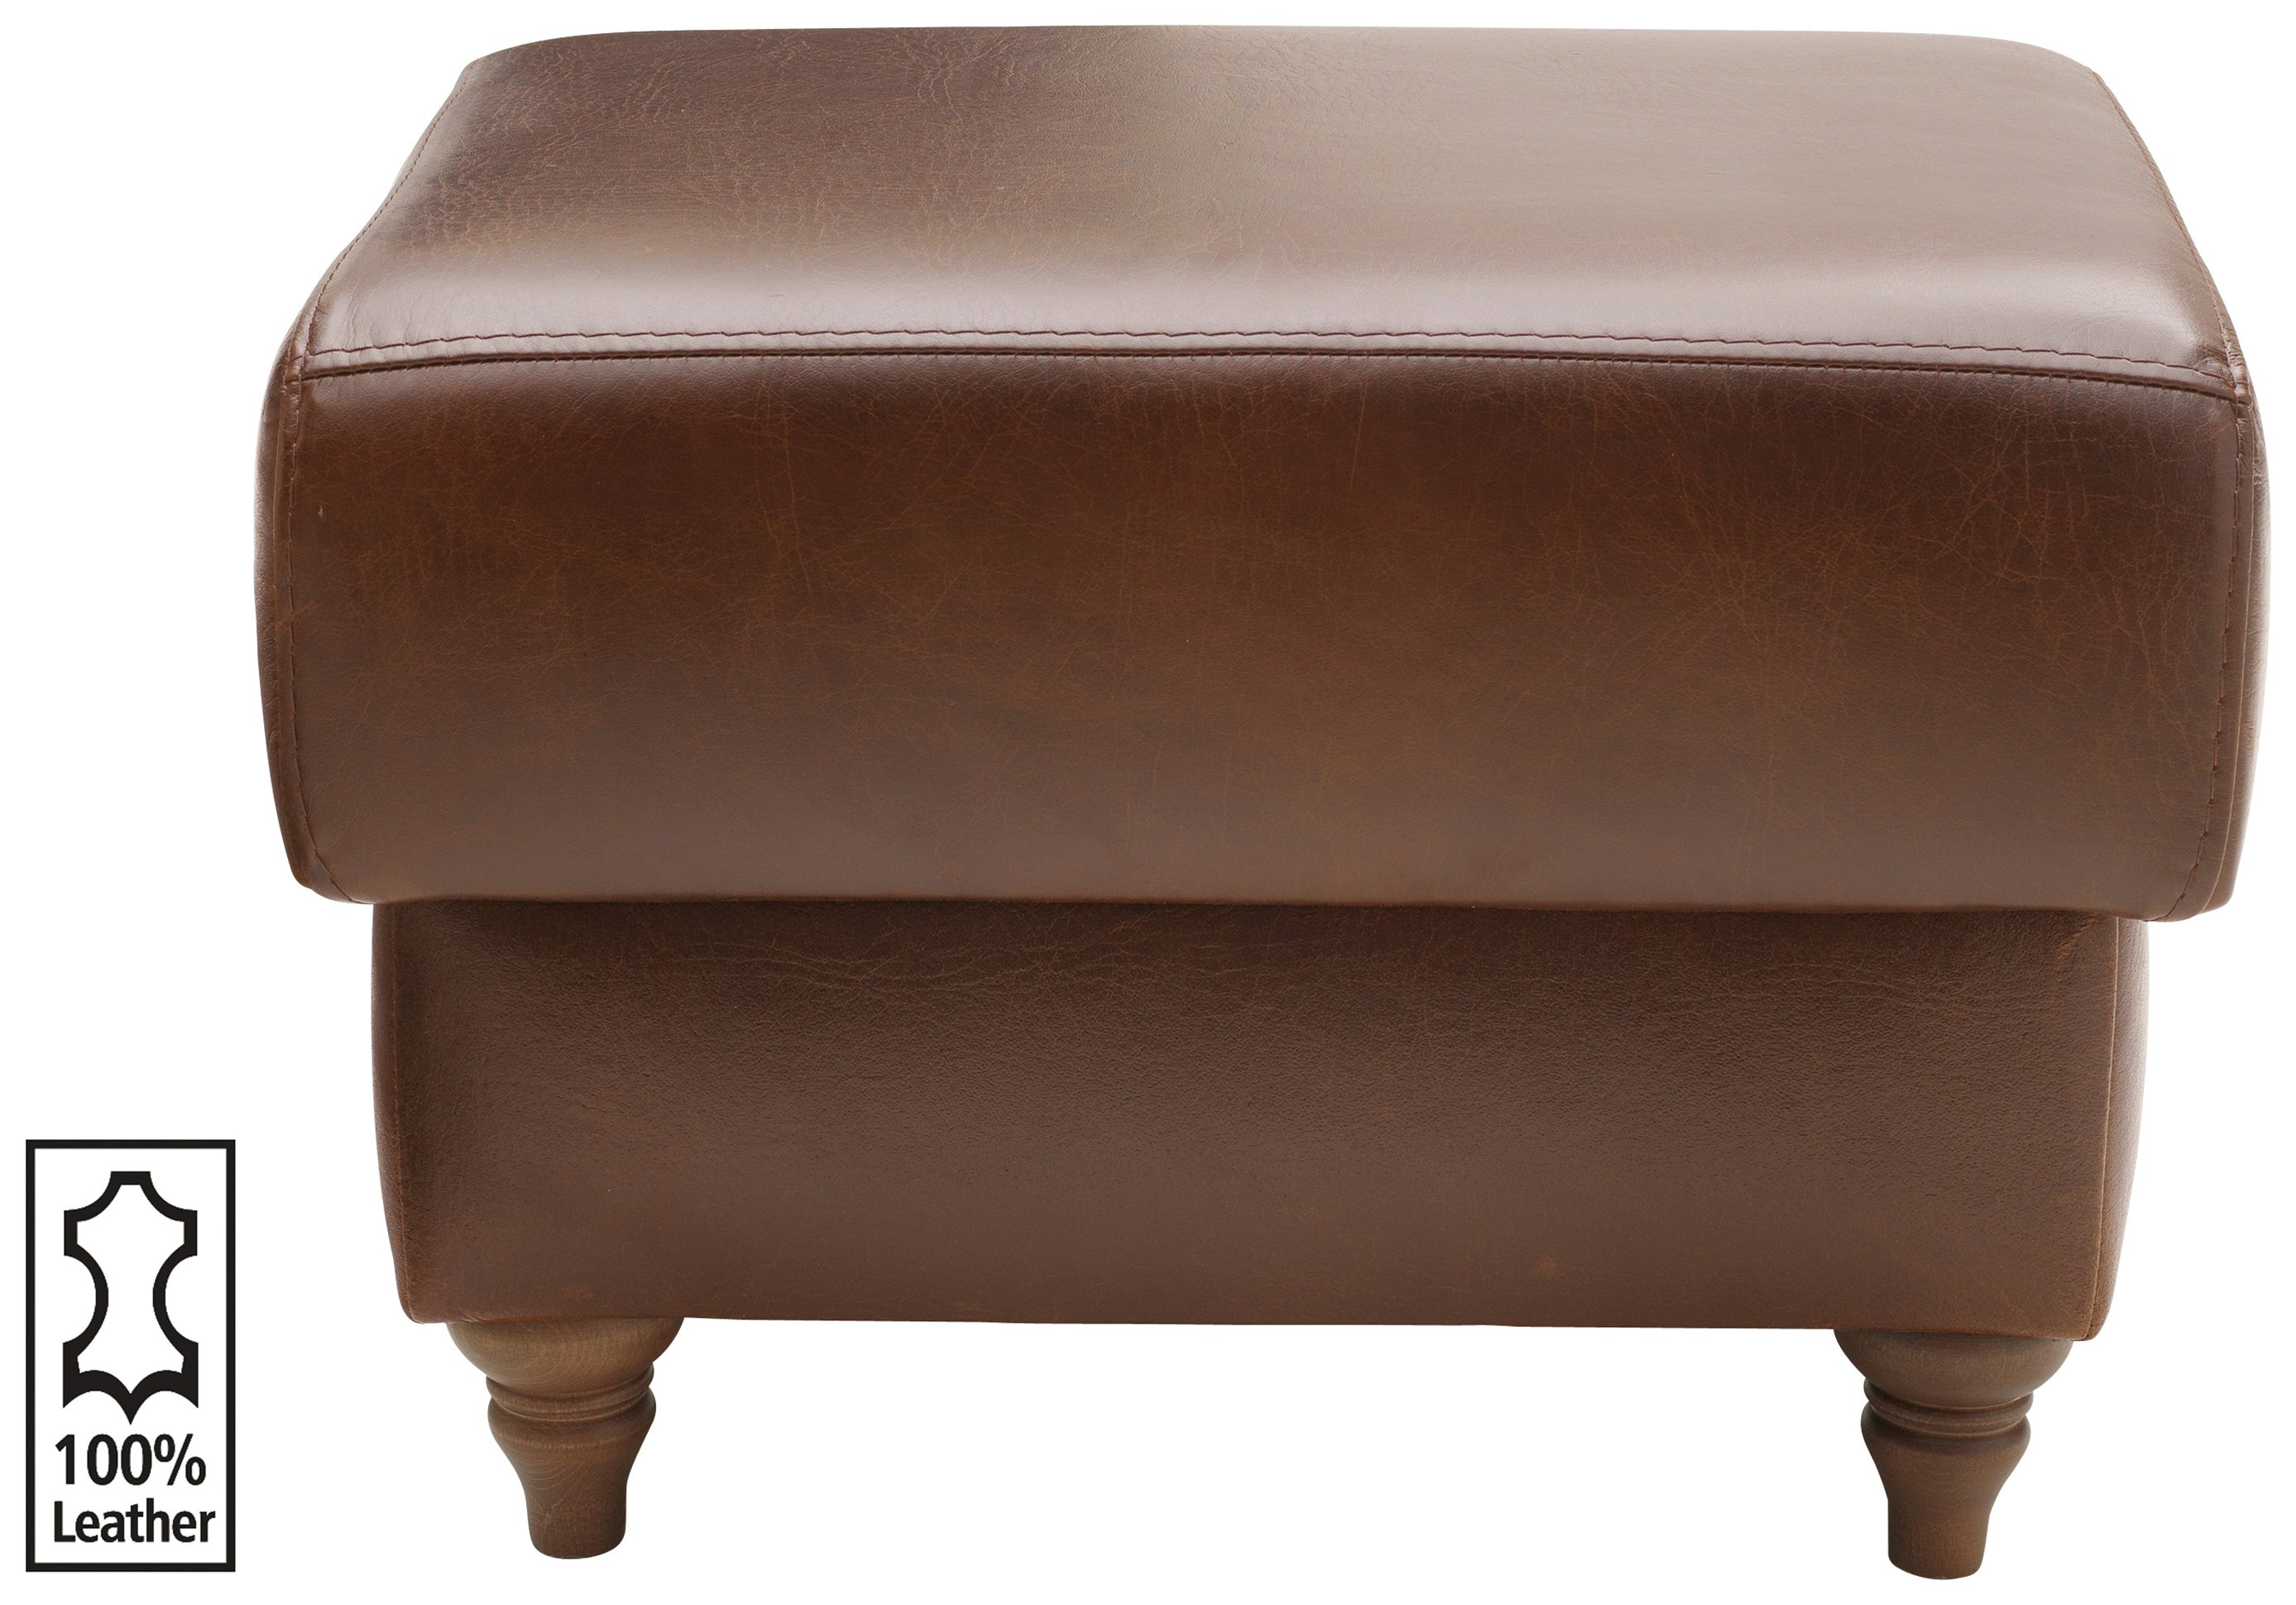 Heart of House - Argyll - Leather Footstool - Tan